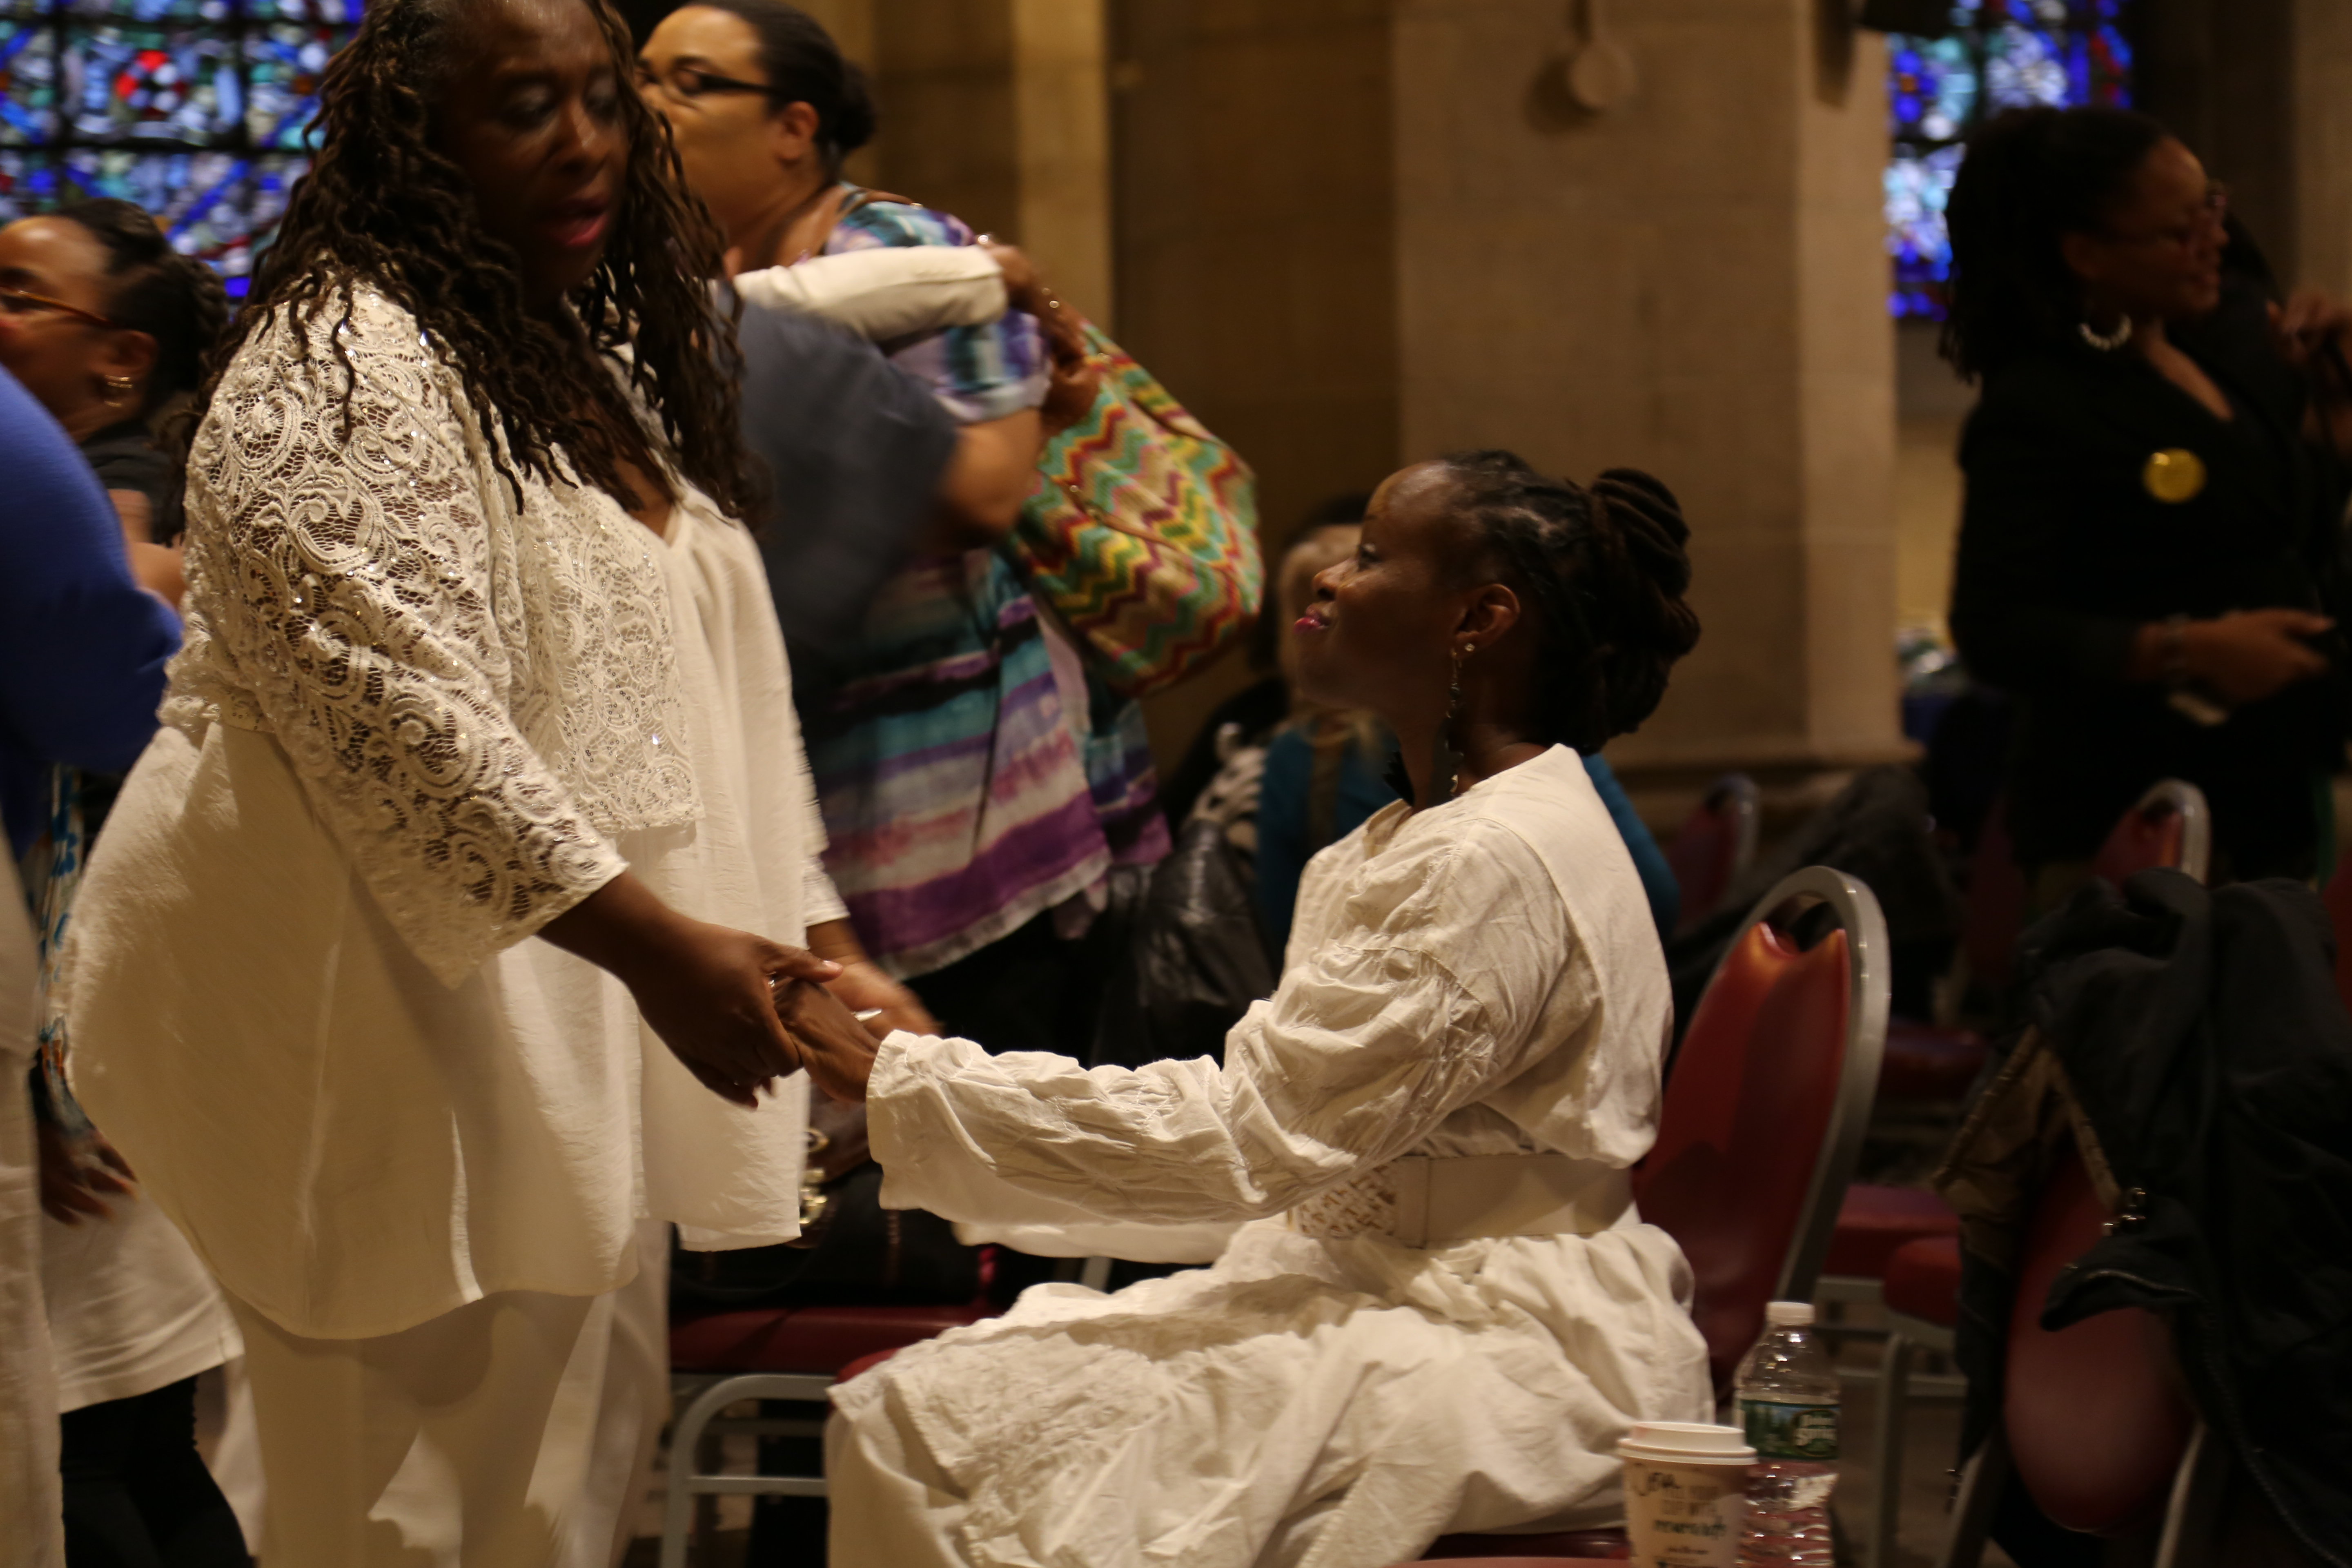 Healers: Support Trauma Counseling